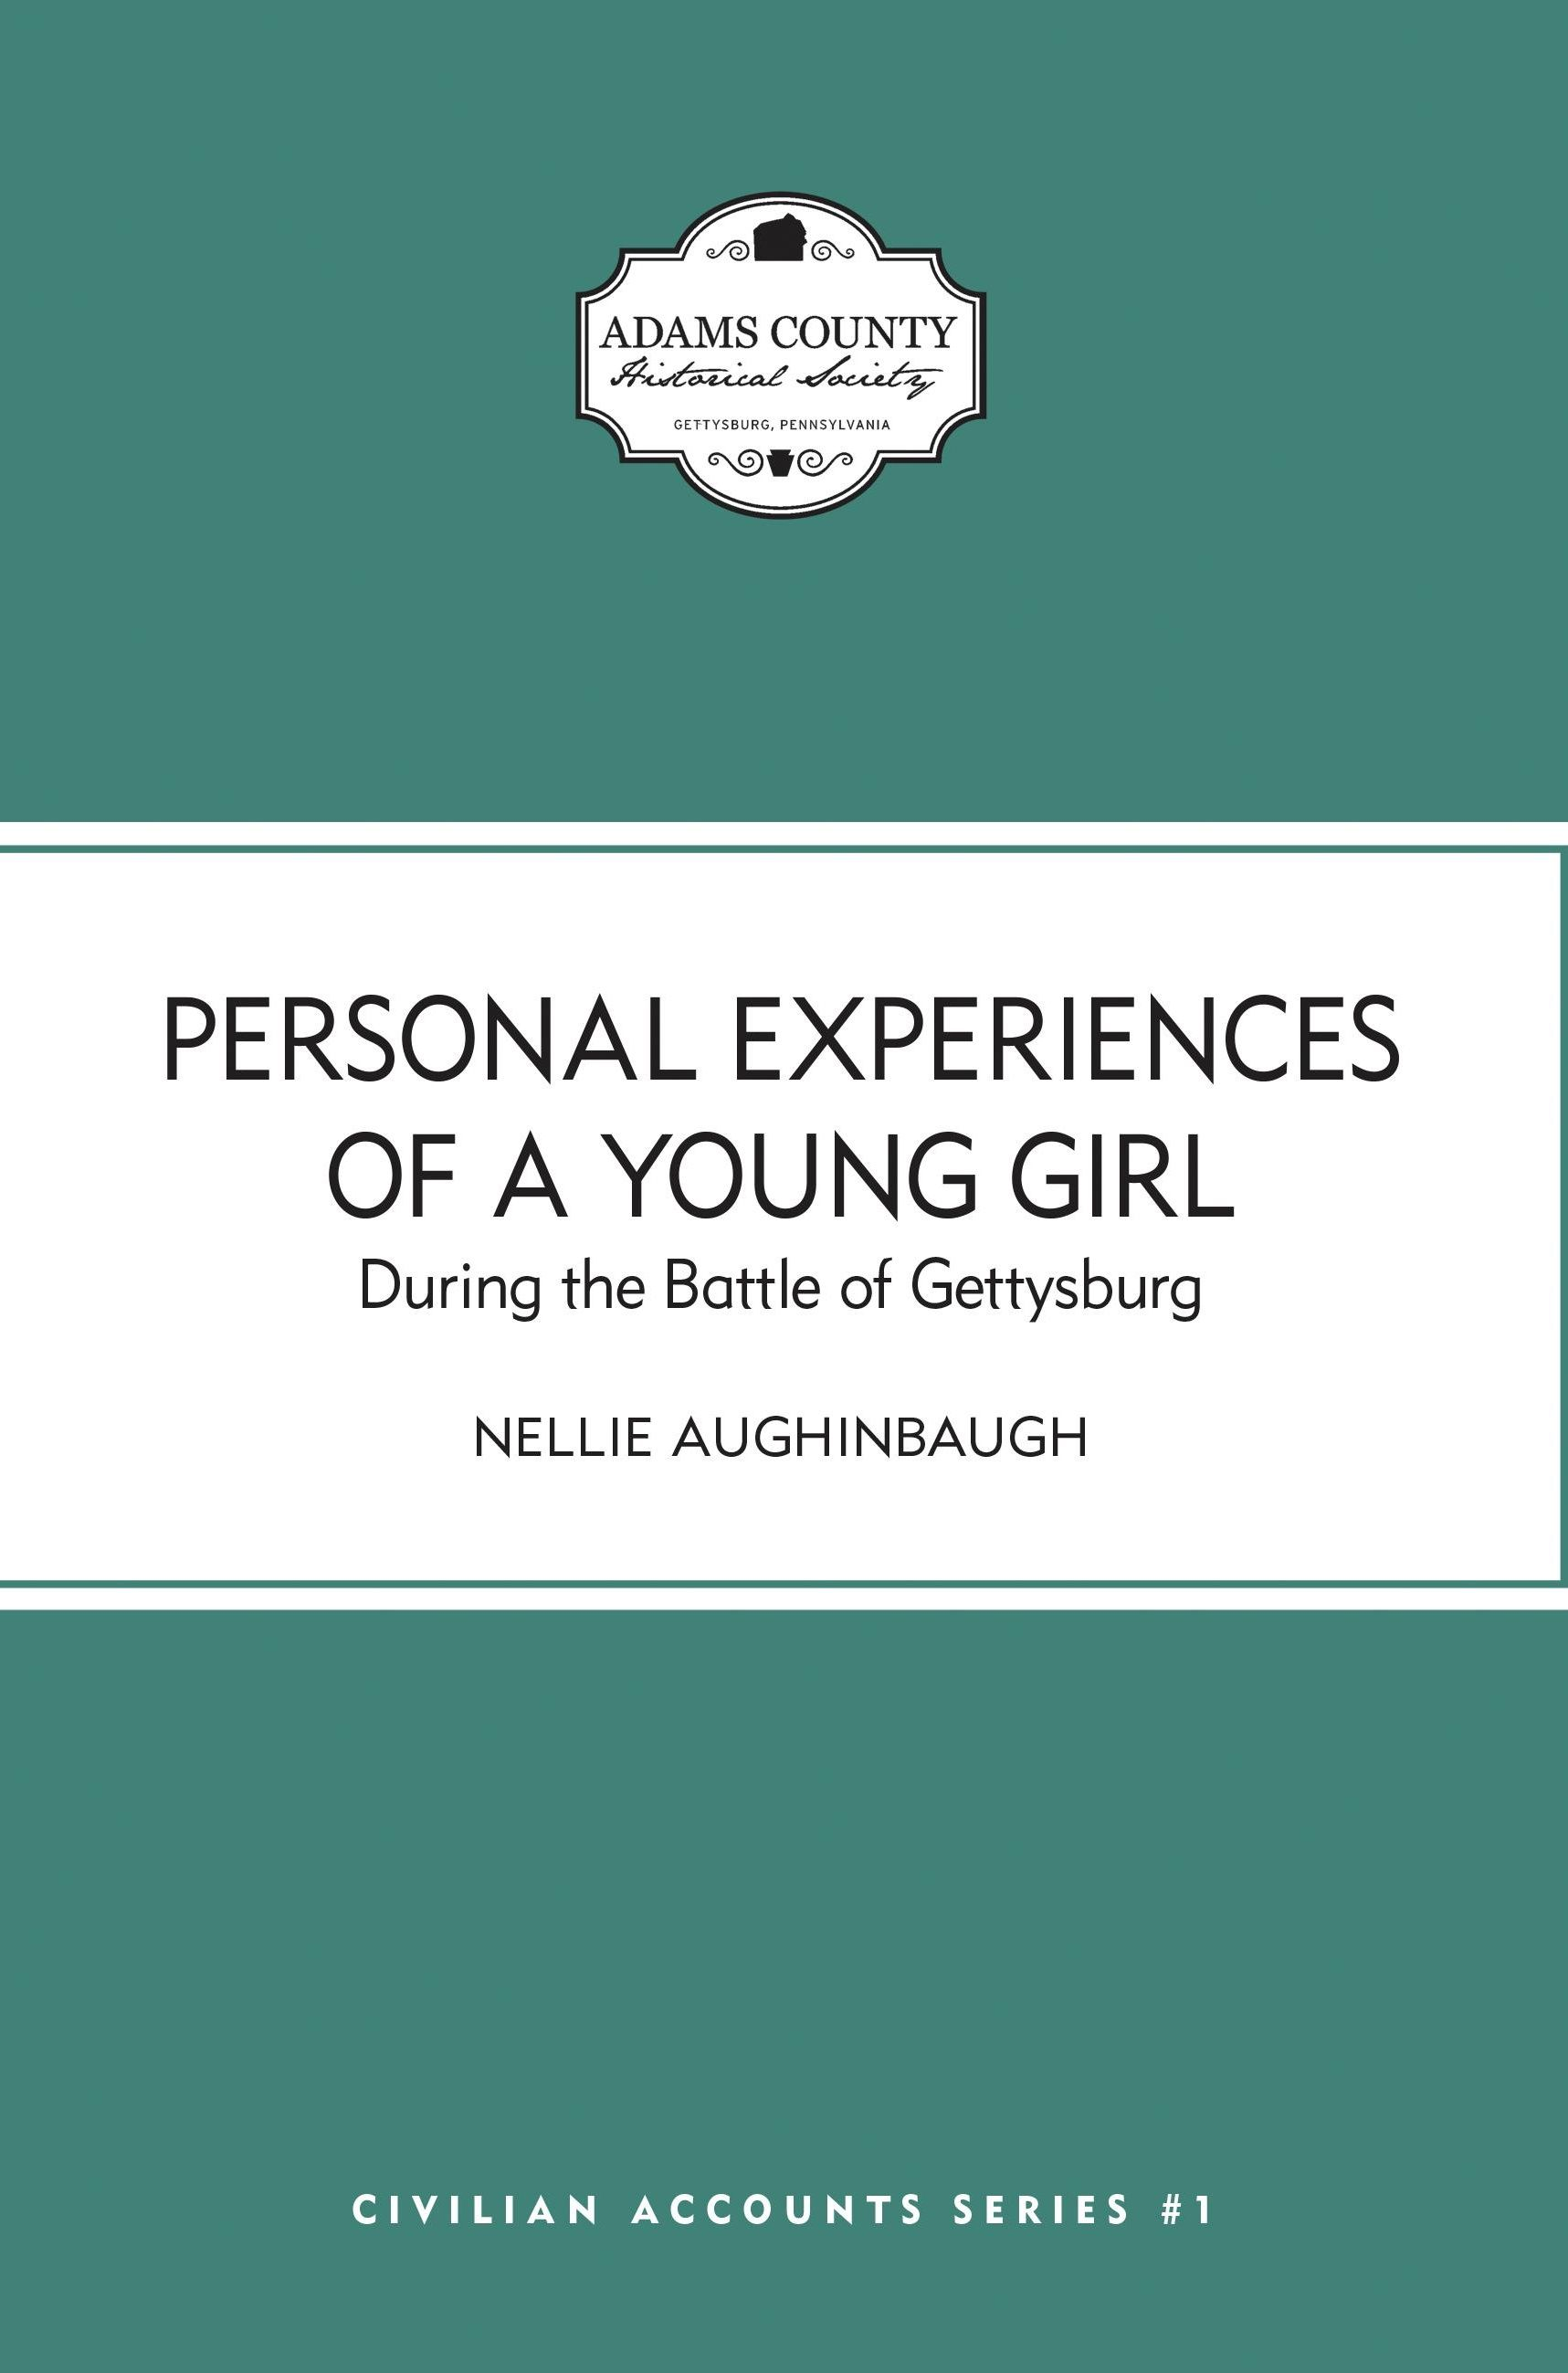 Personal Experiences of a Young Girl During the Battle of Gettysburg (Nellie Aughinbaugh)